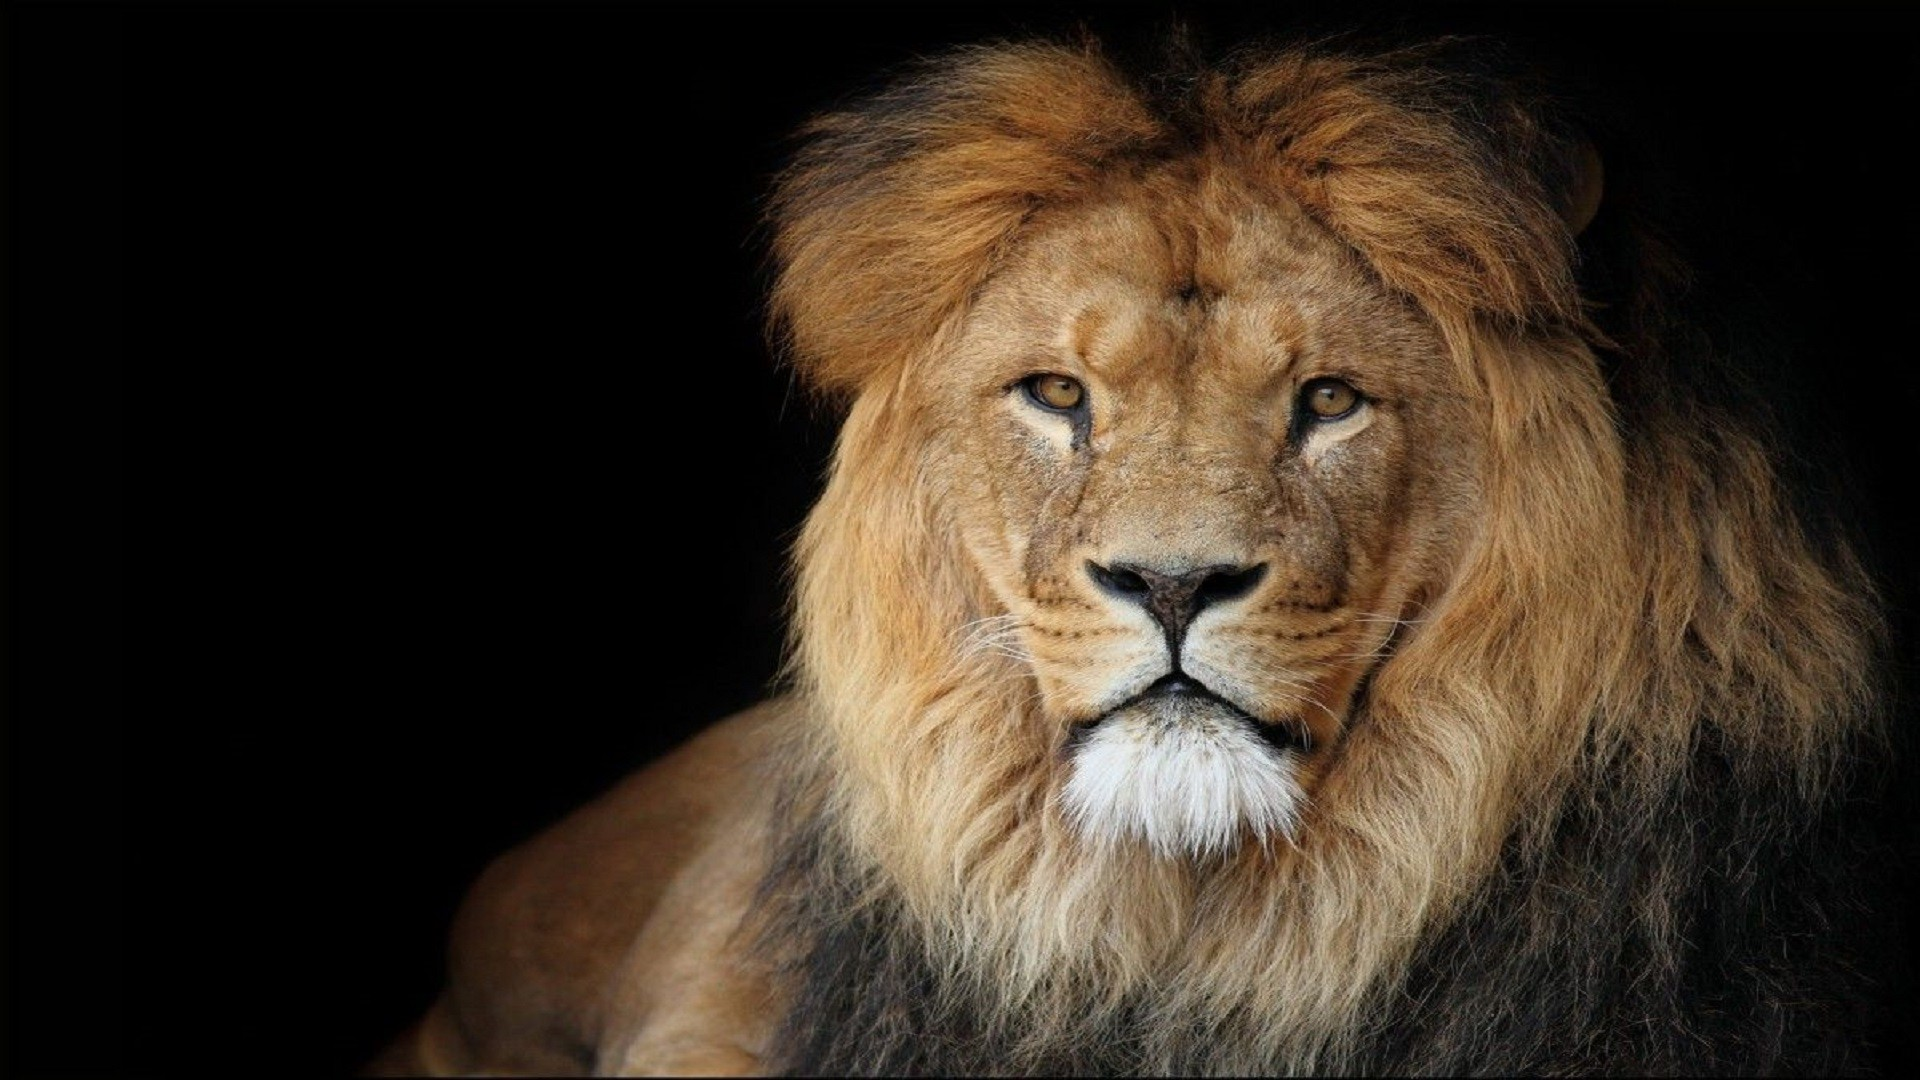 Great Wallpaper Mac Lion - 1016905-download-lion-wallpaper-1920x1080-for-iphone-6  Best Photo Reference_392111.jpg